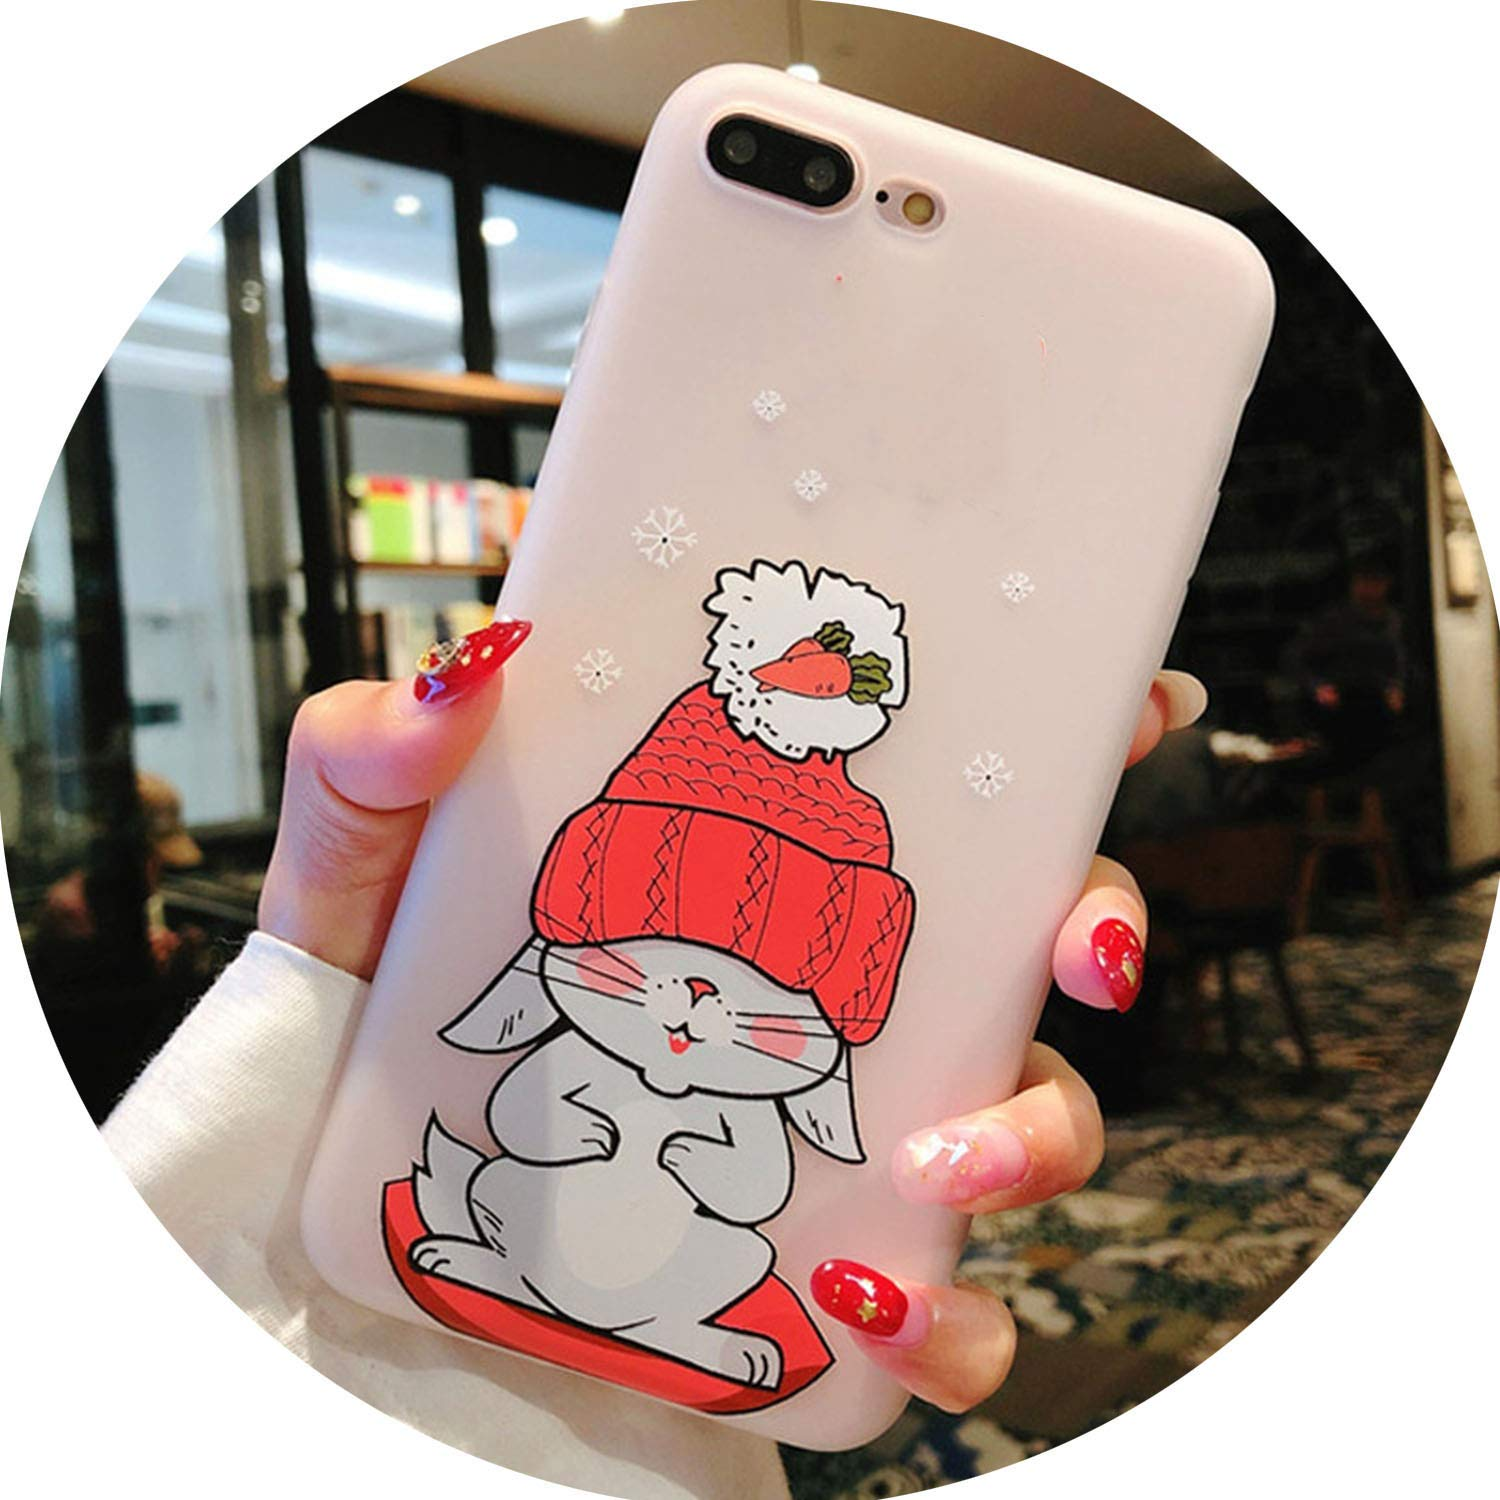 Heat-Tracing Silicone Phone Case for iPhone 7 8 Plus 3D Cartoon Elephant Rabbit Soft TPU Back Cover for iPhone X 7 6 6S Plus Cases,SJ9874,for iPhone 7 Plus